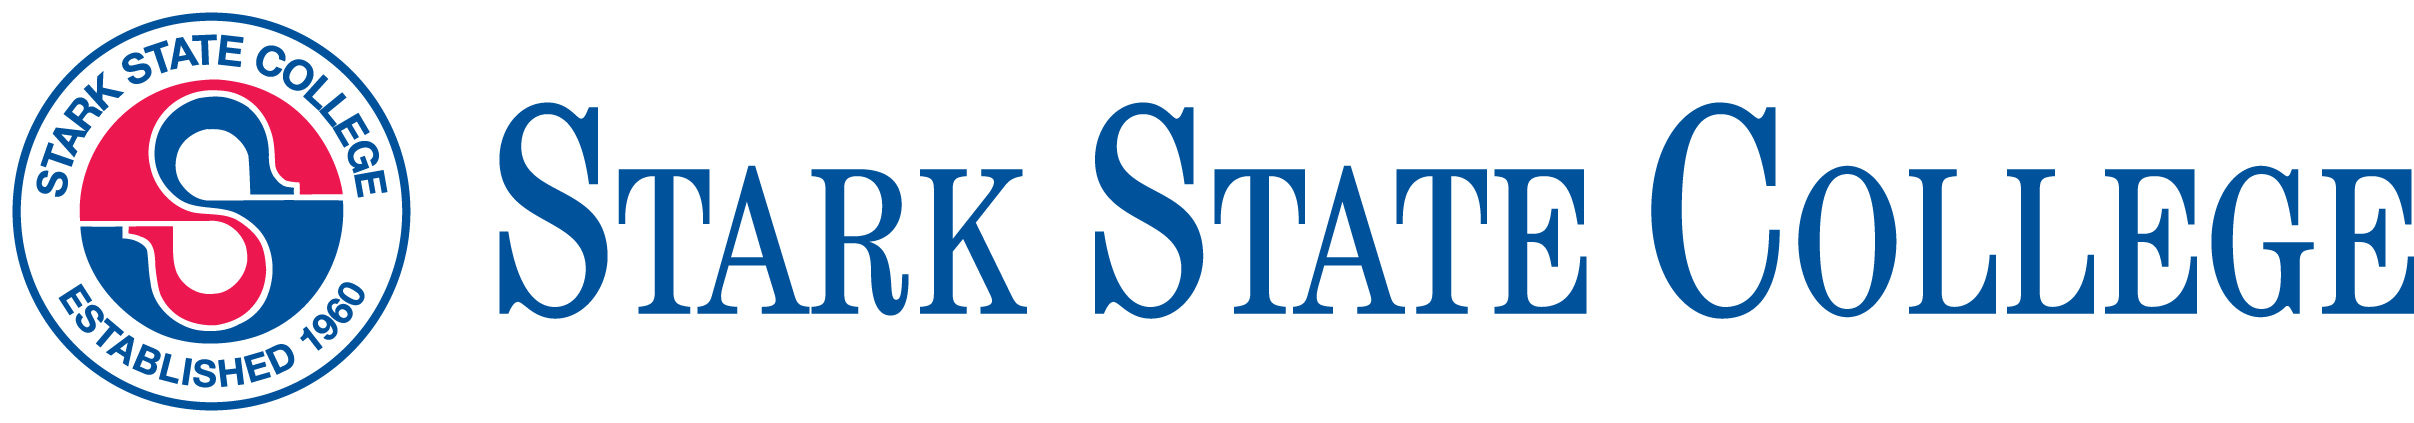 Stark State College - Web design and development technology program